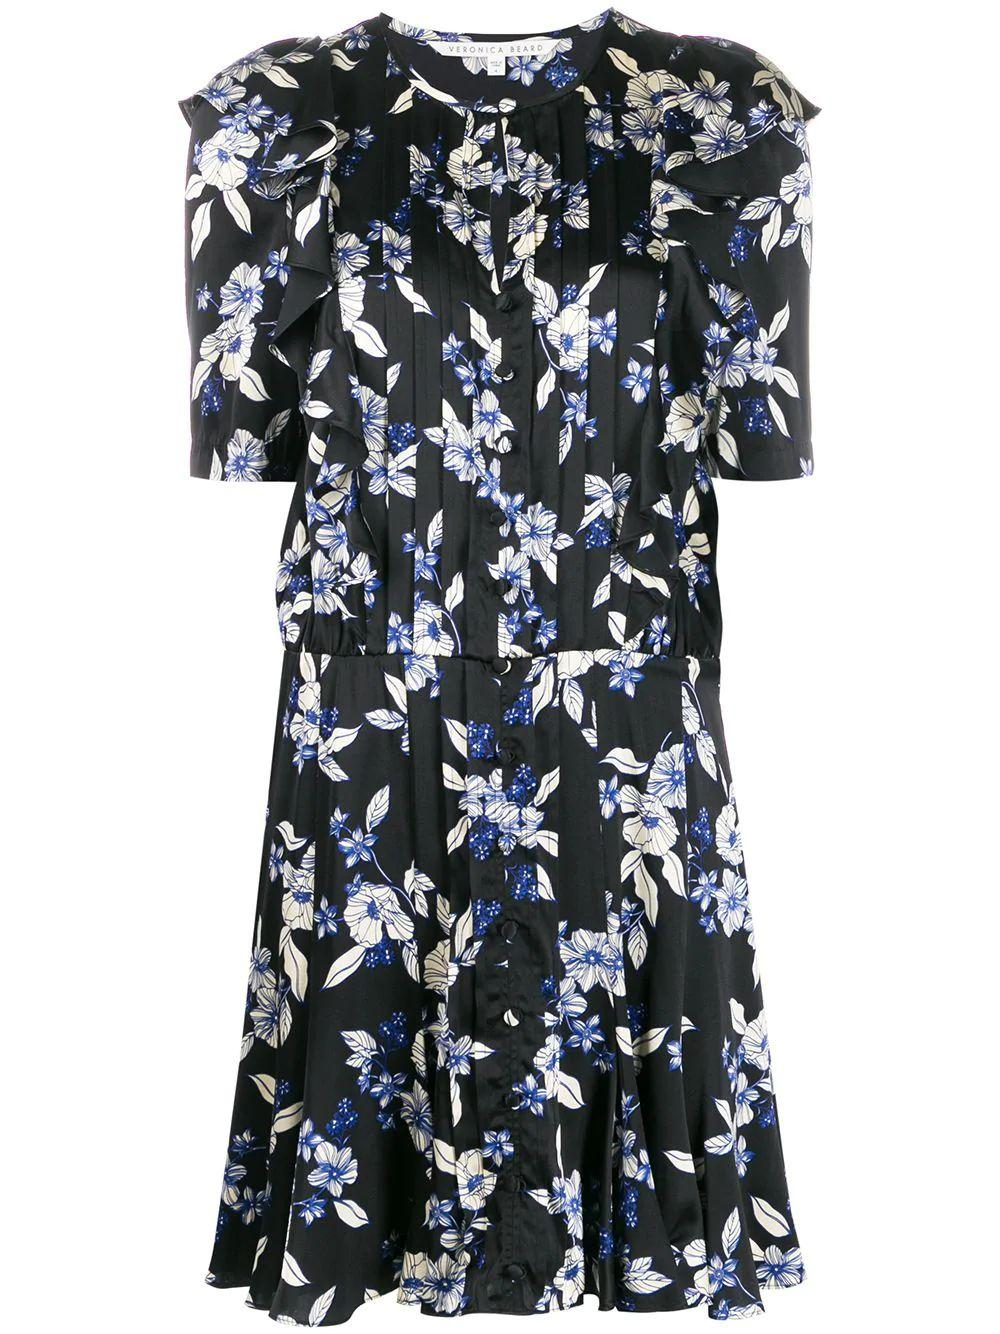 Camille Short Sleeve Floral Print Dress Item # 1911CHM022780